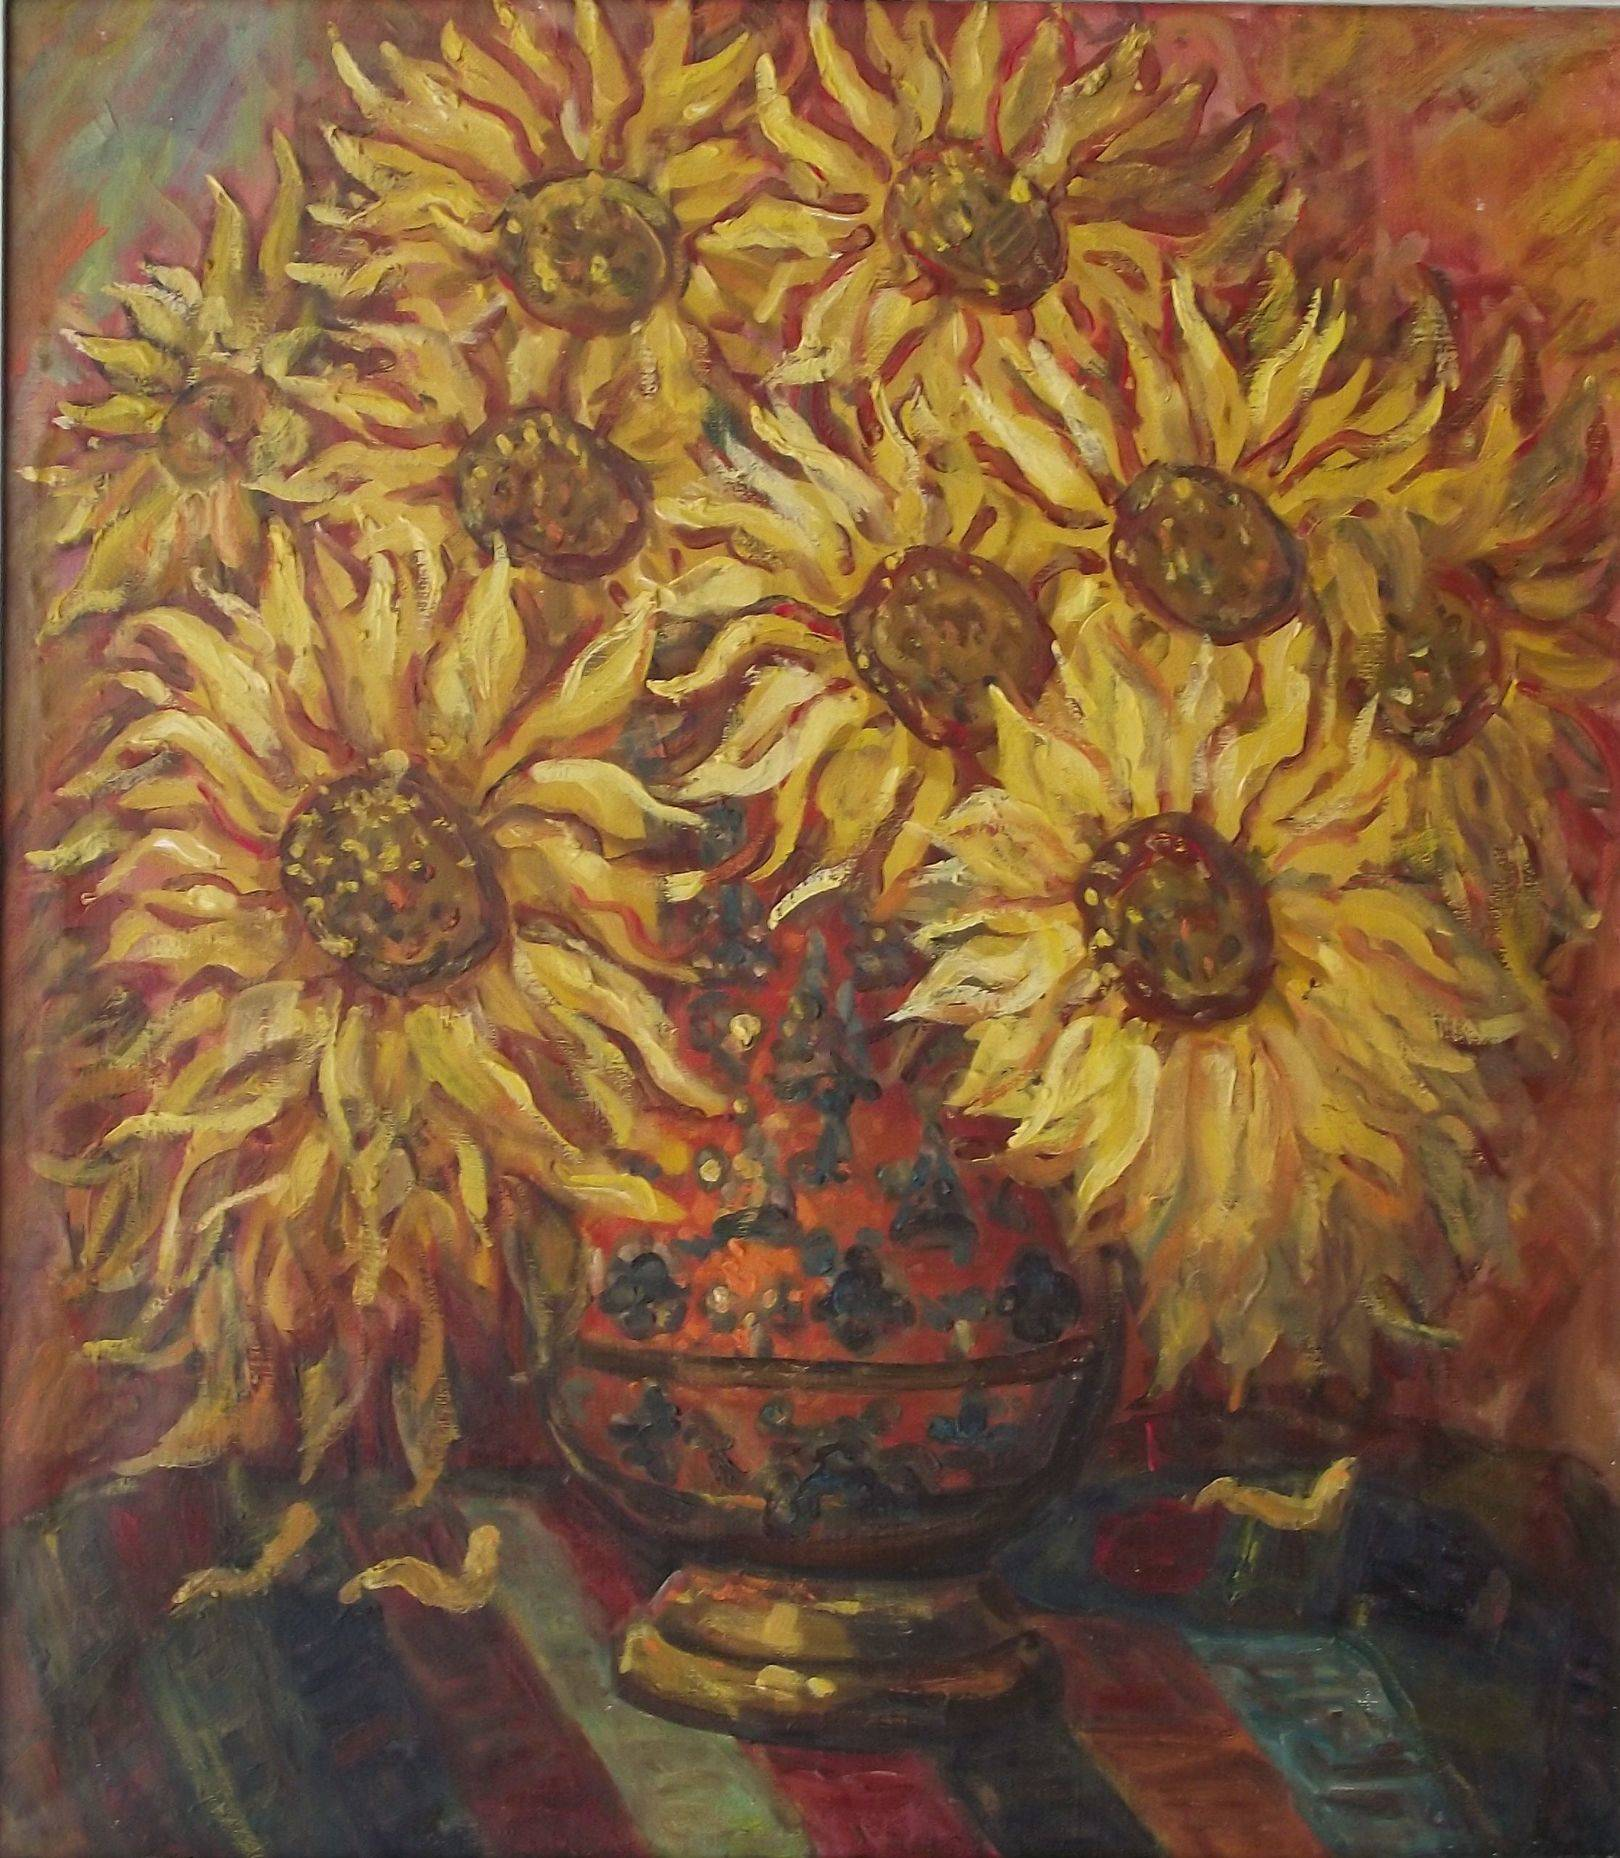 sunflowers are in the vase of х.м1996г. 90*110